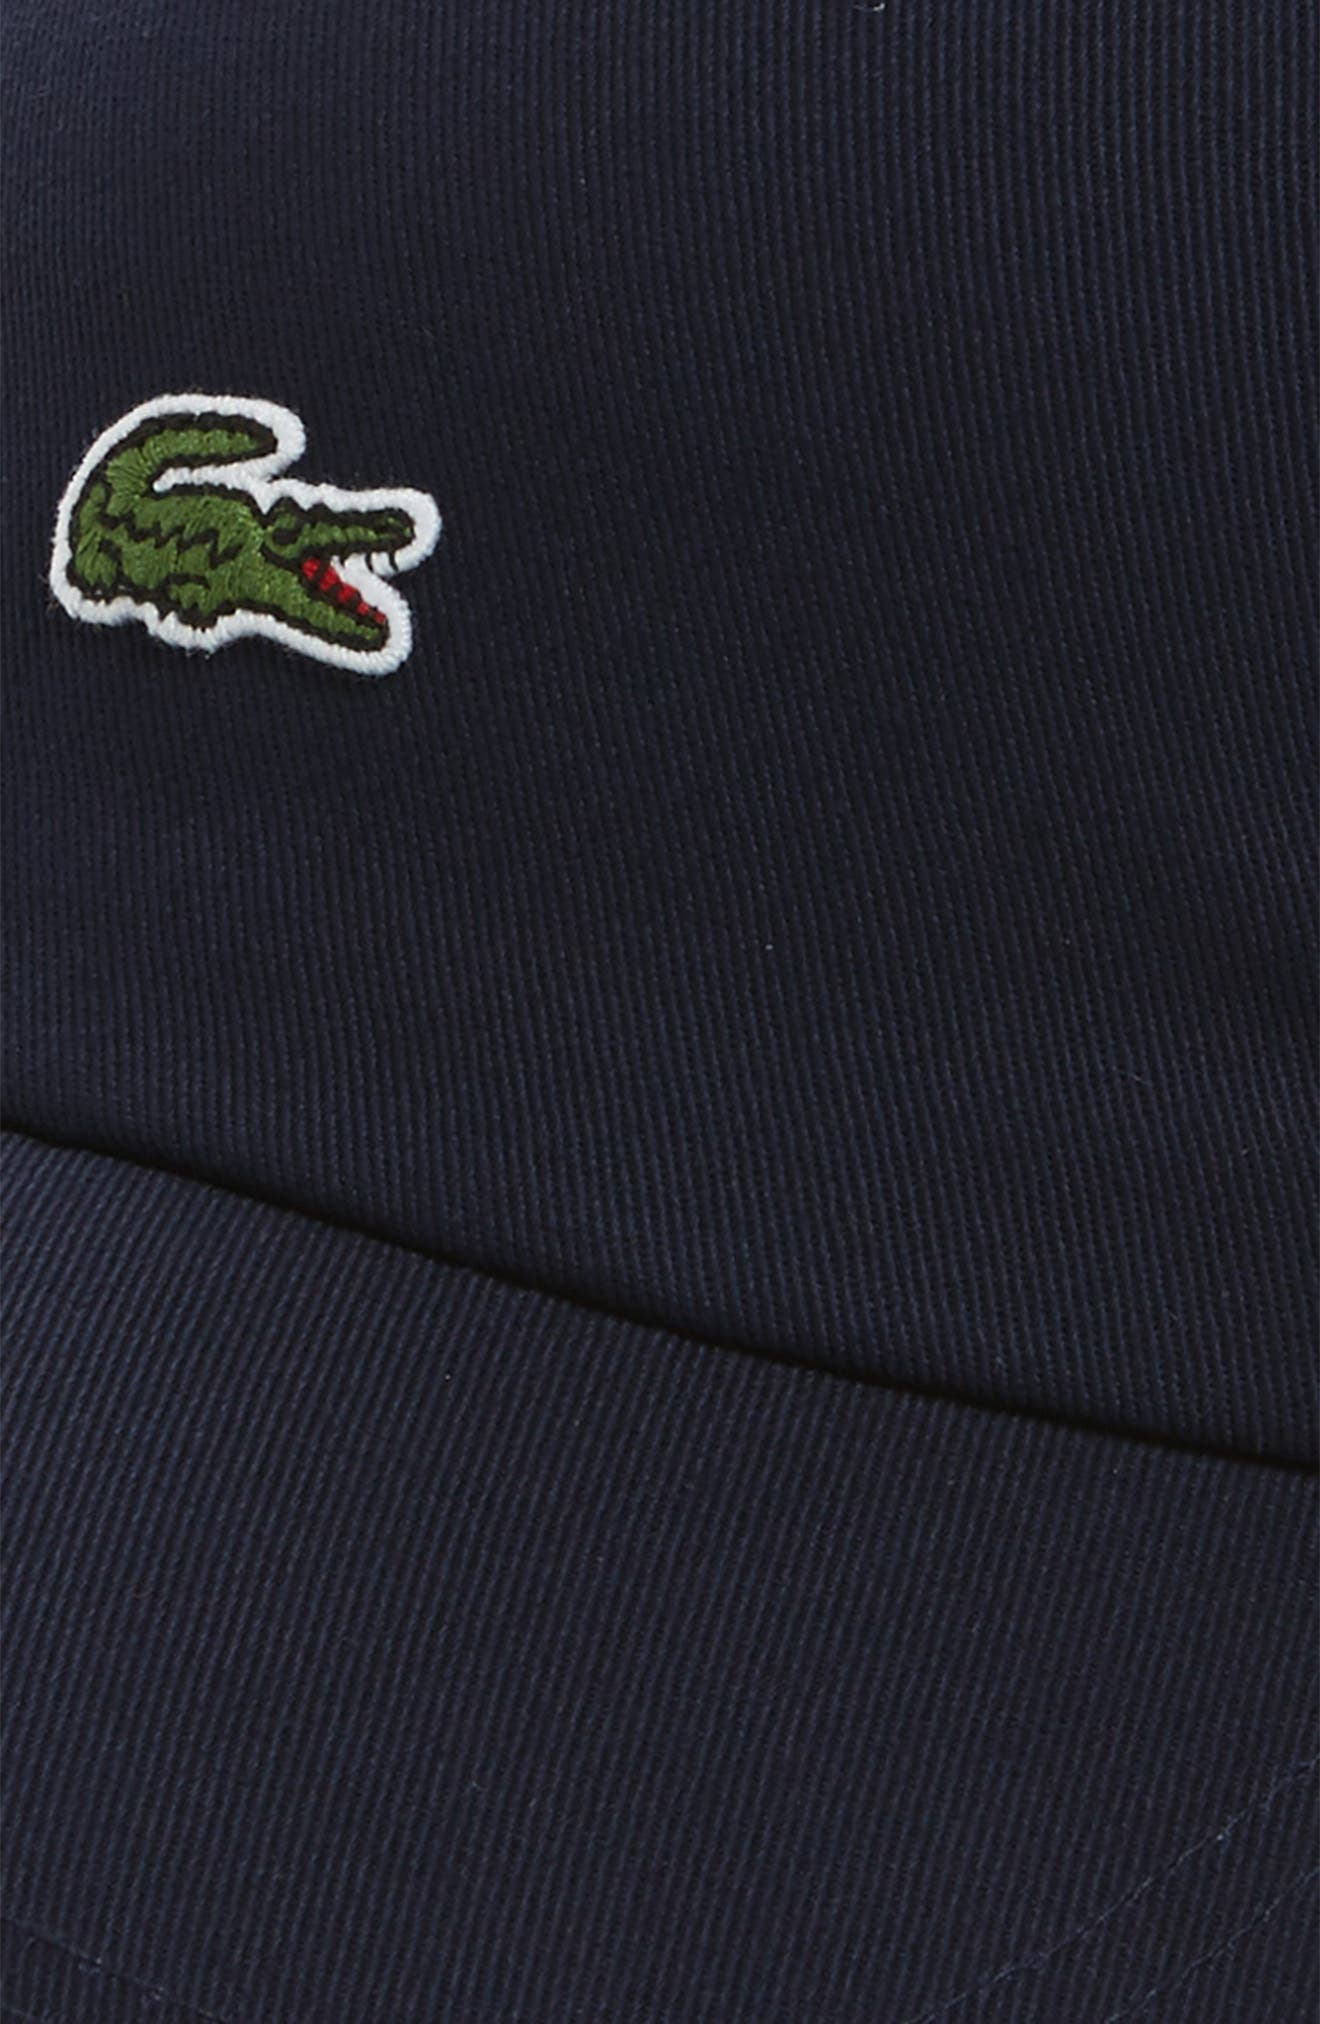 Small Croc Baseball Cap,                             Alternate thumbnail 16, color,